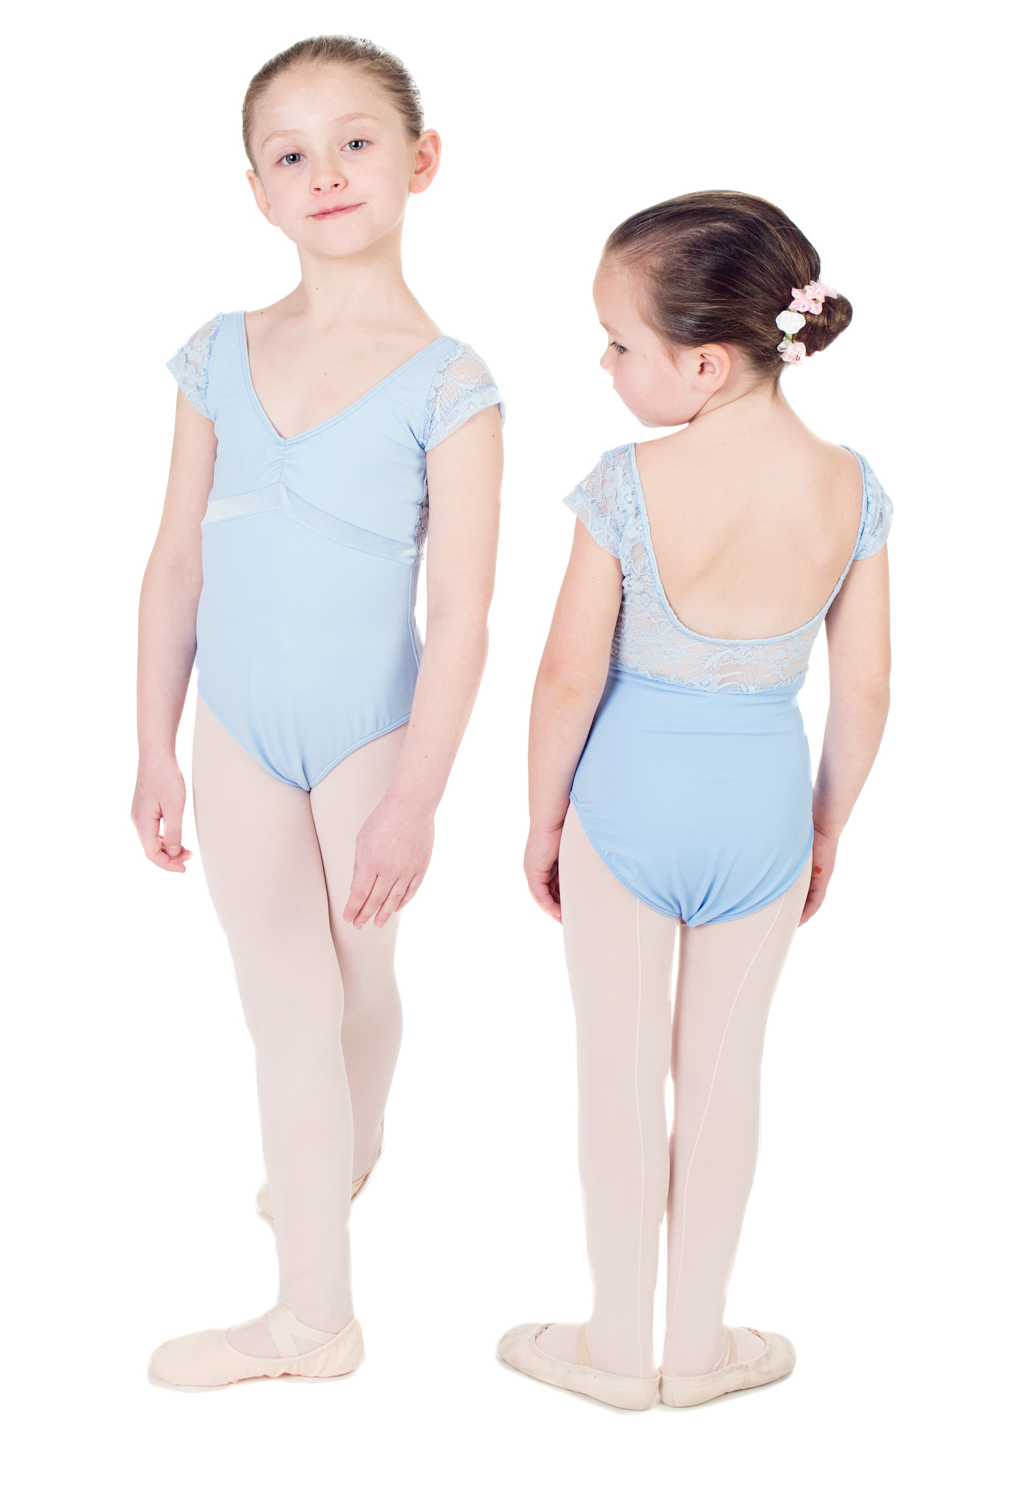 """Aurora"" Cap Sleeved Leotard with Velvet Inset and Lace or Mesh Details - Custom Designed Leotards - Child and Adult Sizes"